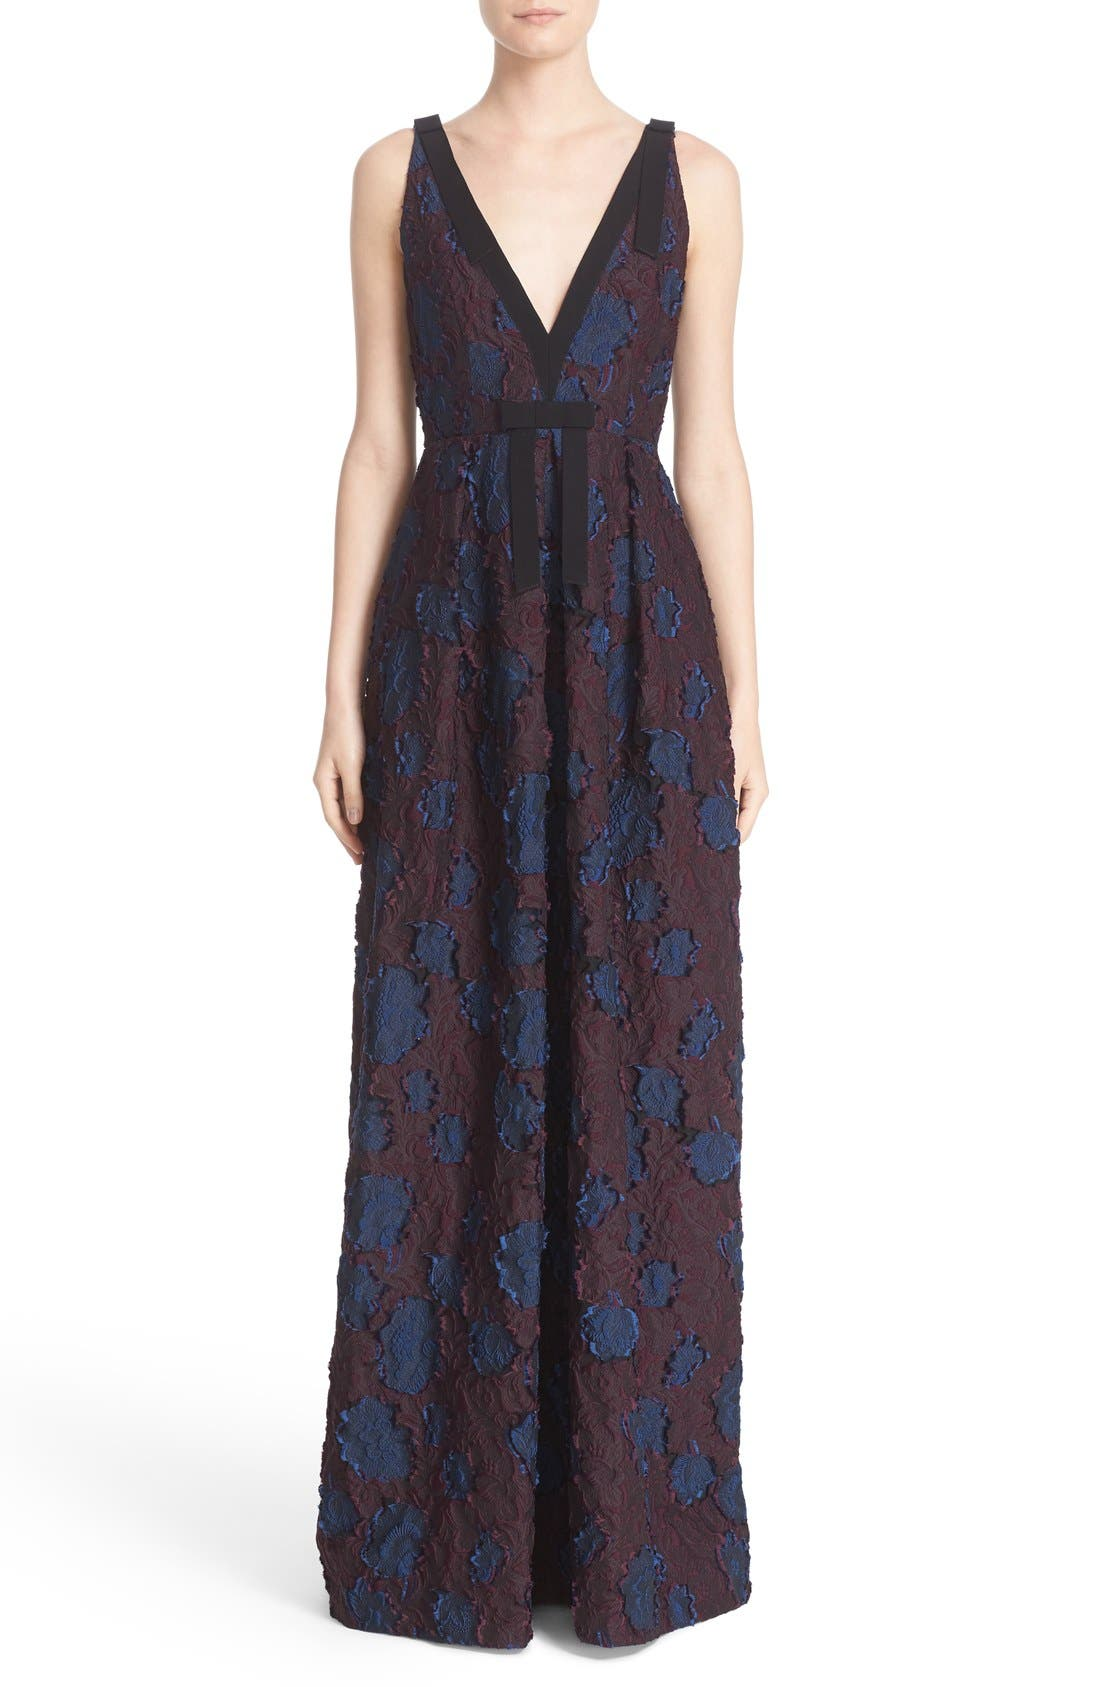 Alternate Image 1 Selected - Erdem 'Ceren' Bow Detail Fil Coupé Gown